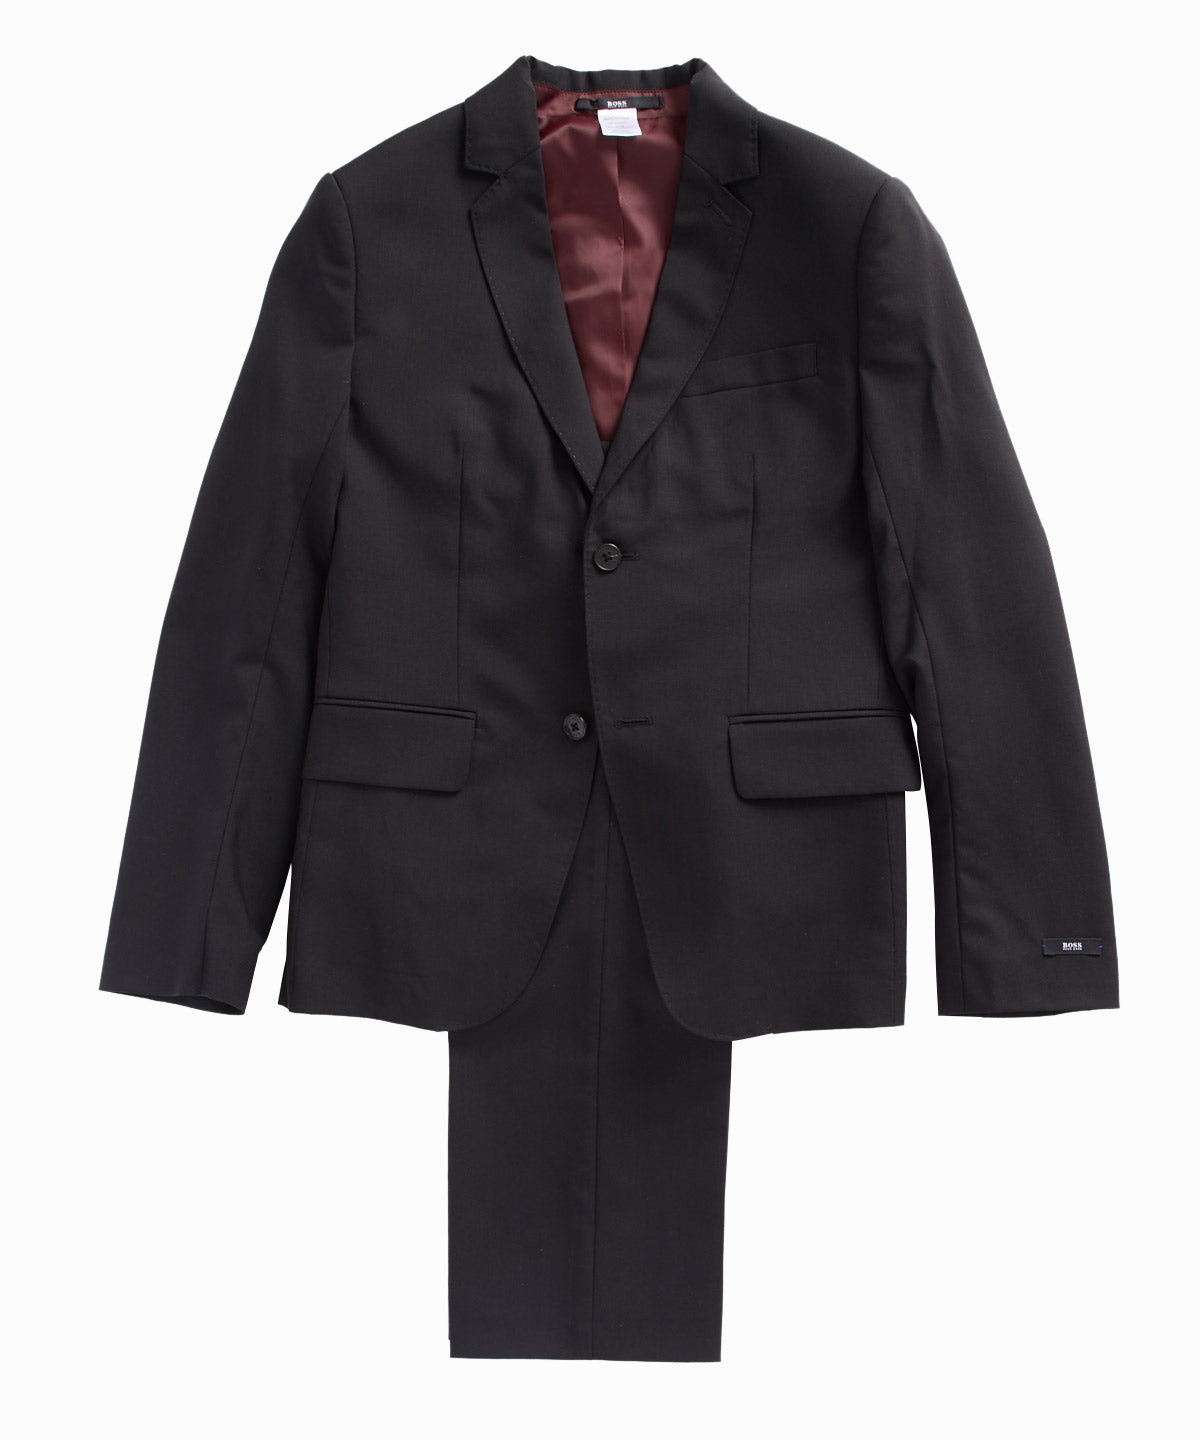 Black Two-Piece Suit Set